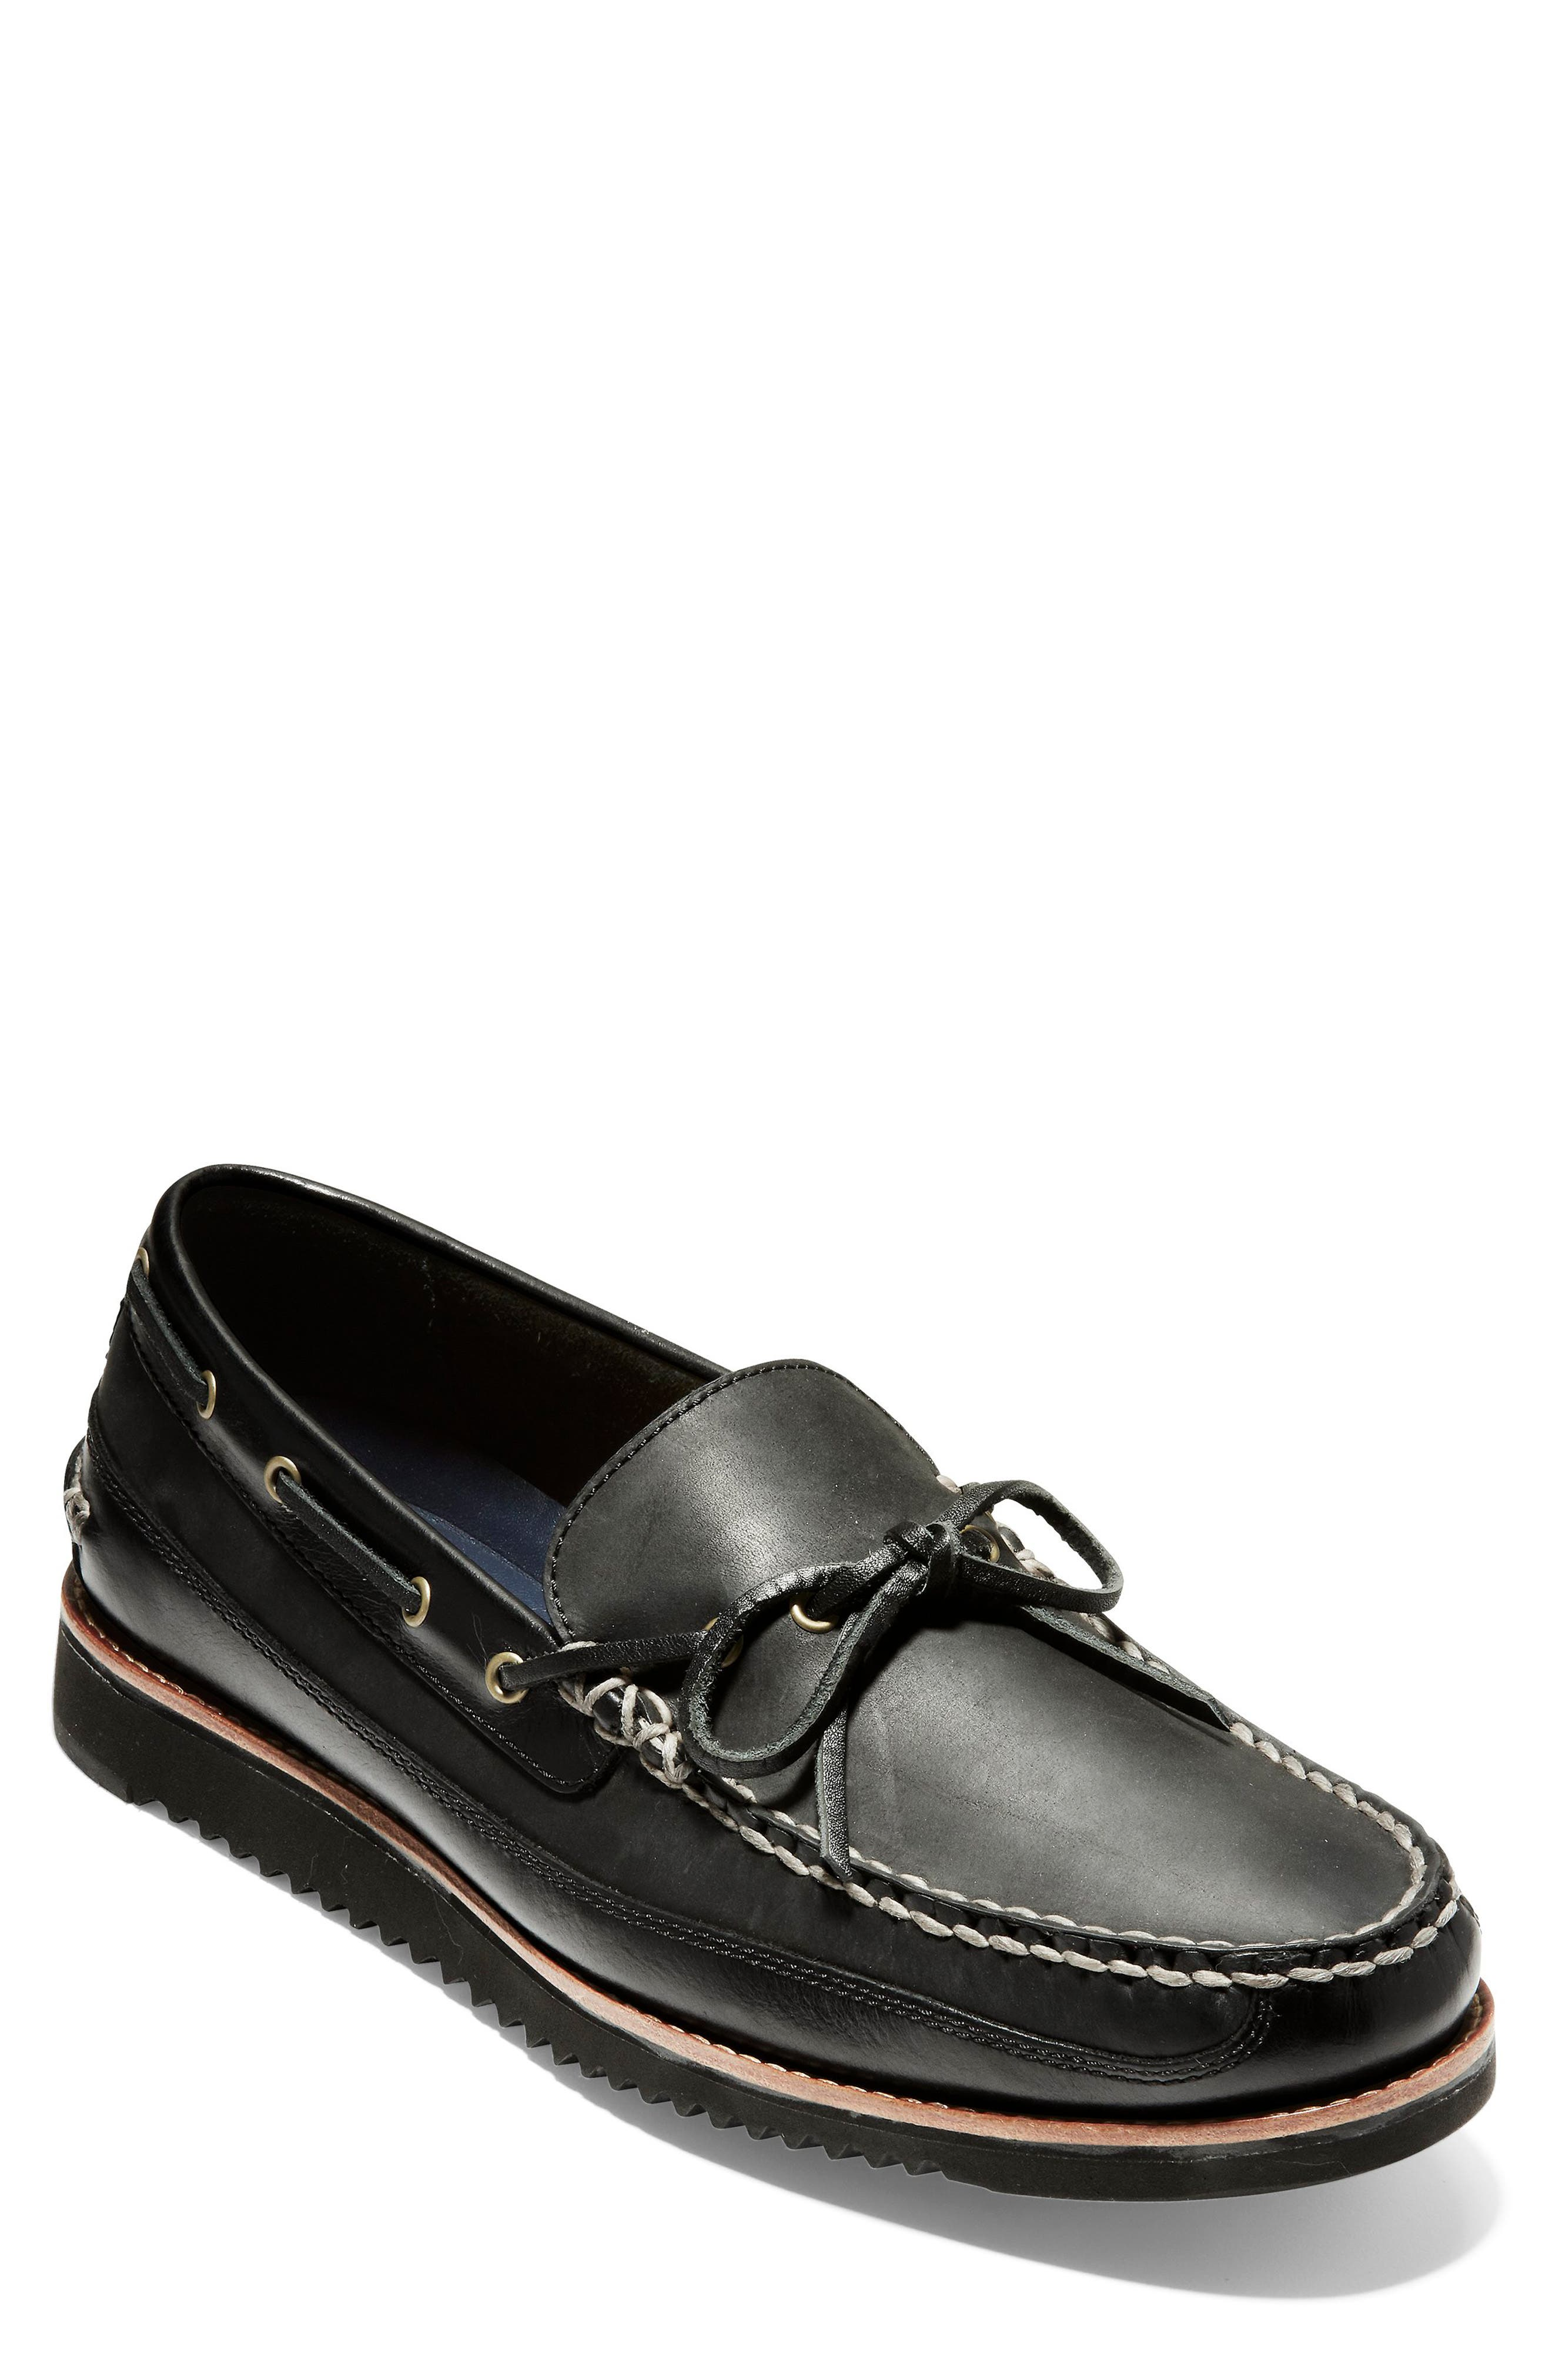 Pinch Loafer,                         Main,                         color, 001